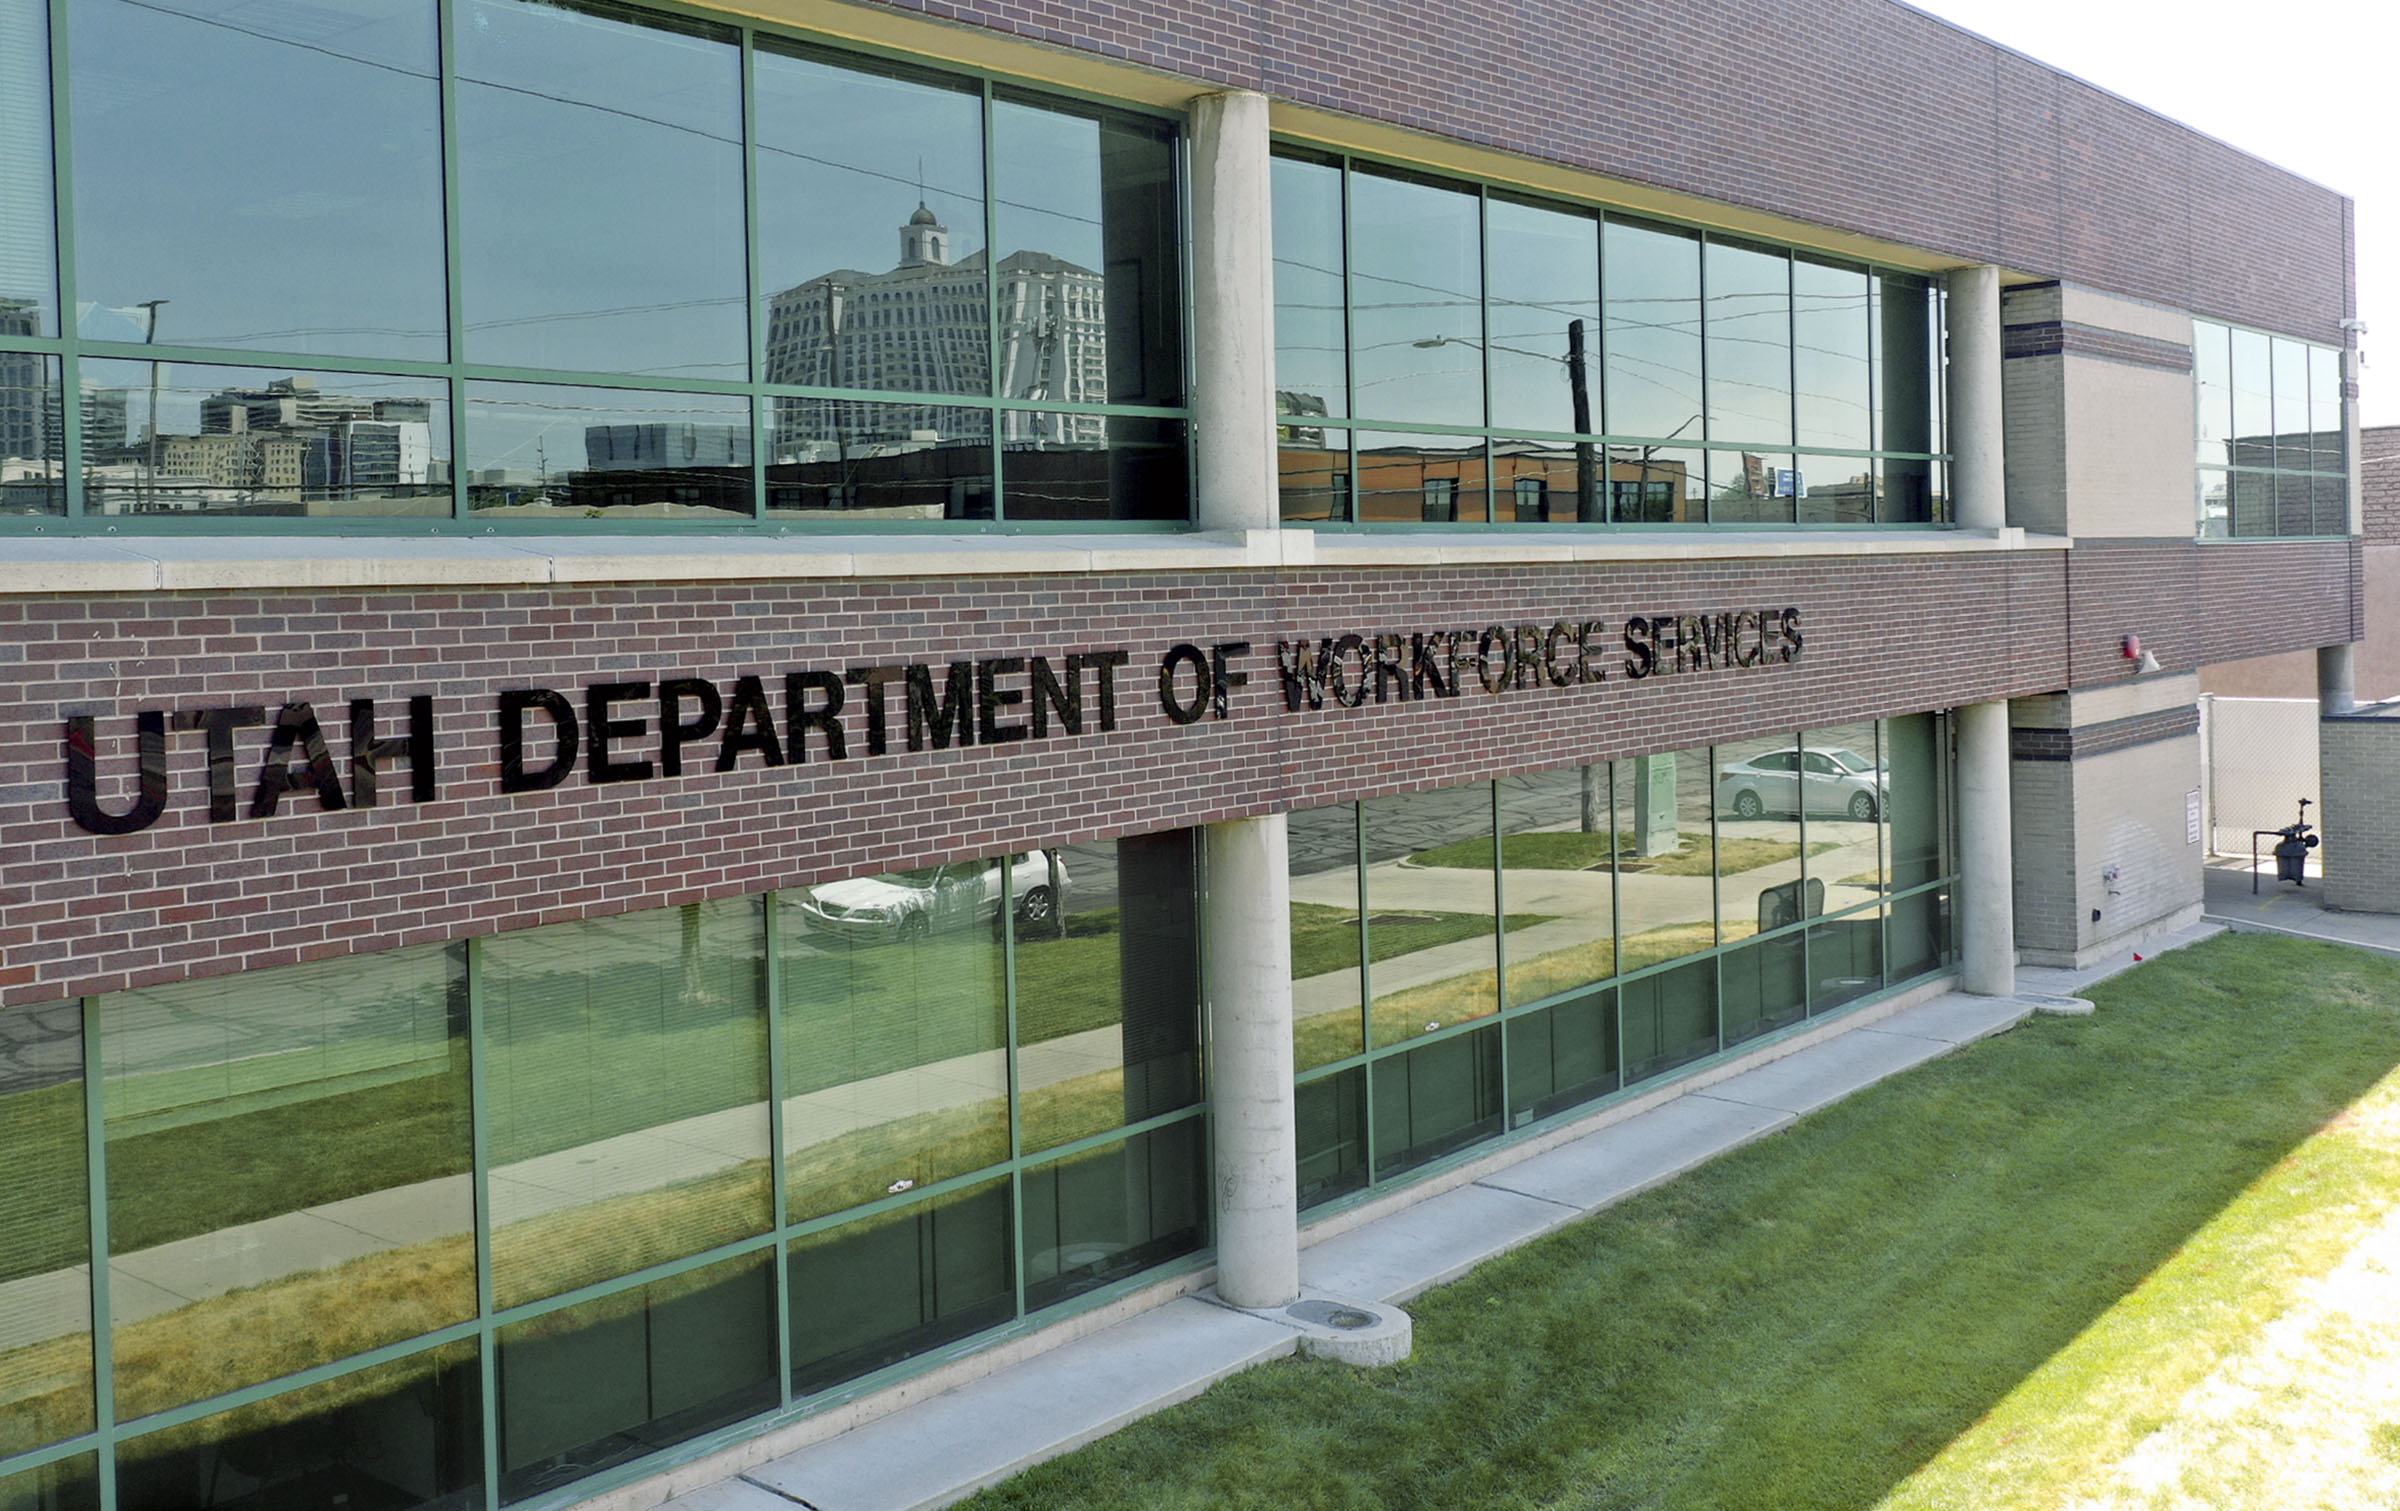 The Utah Department of Workforce Services in Salt Lake City is pictured on Thursday, July 16, 2020.